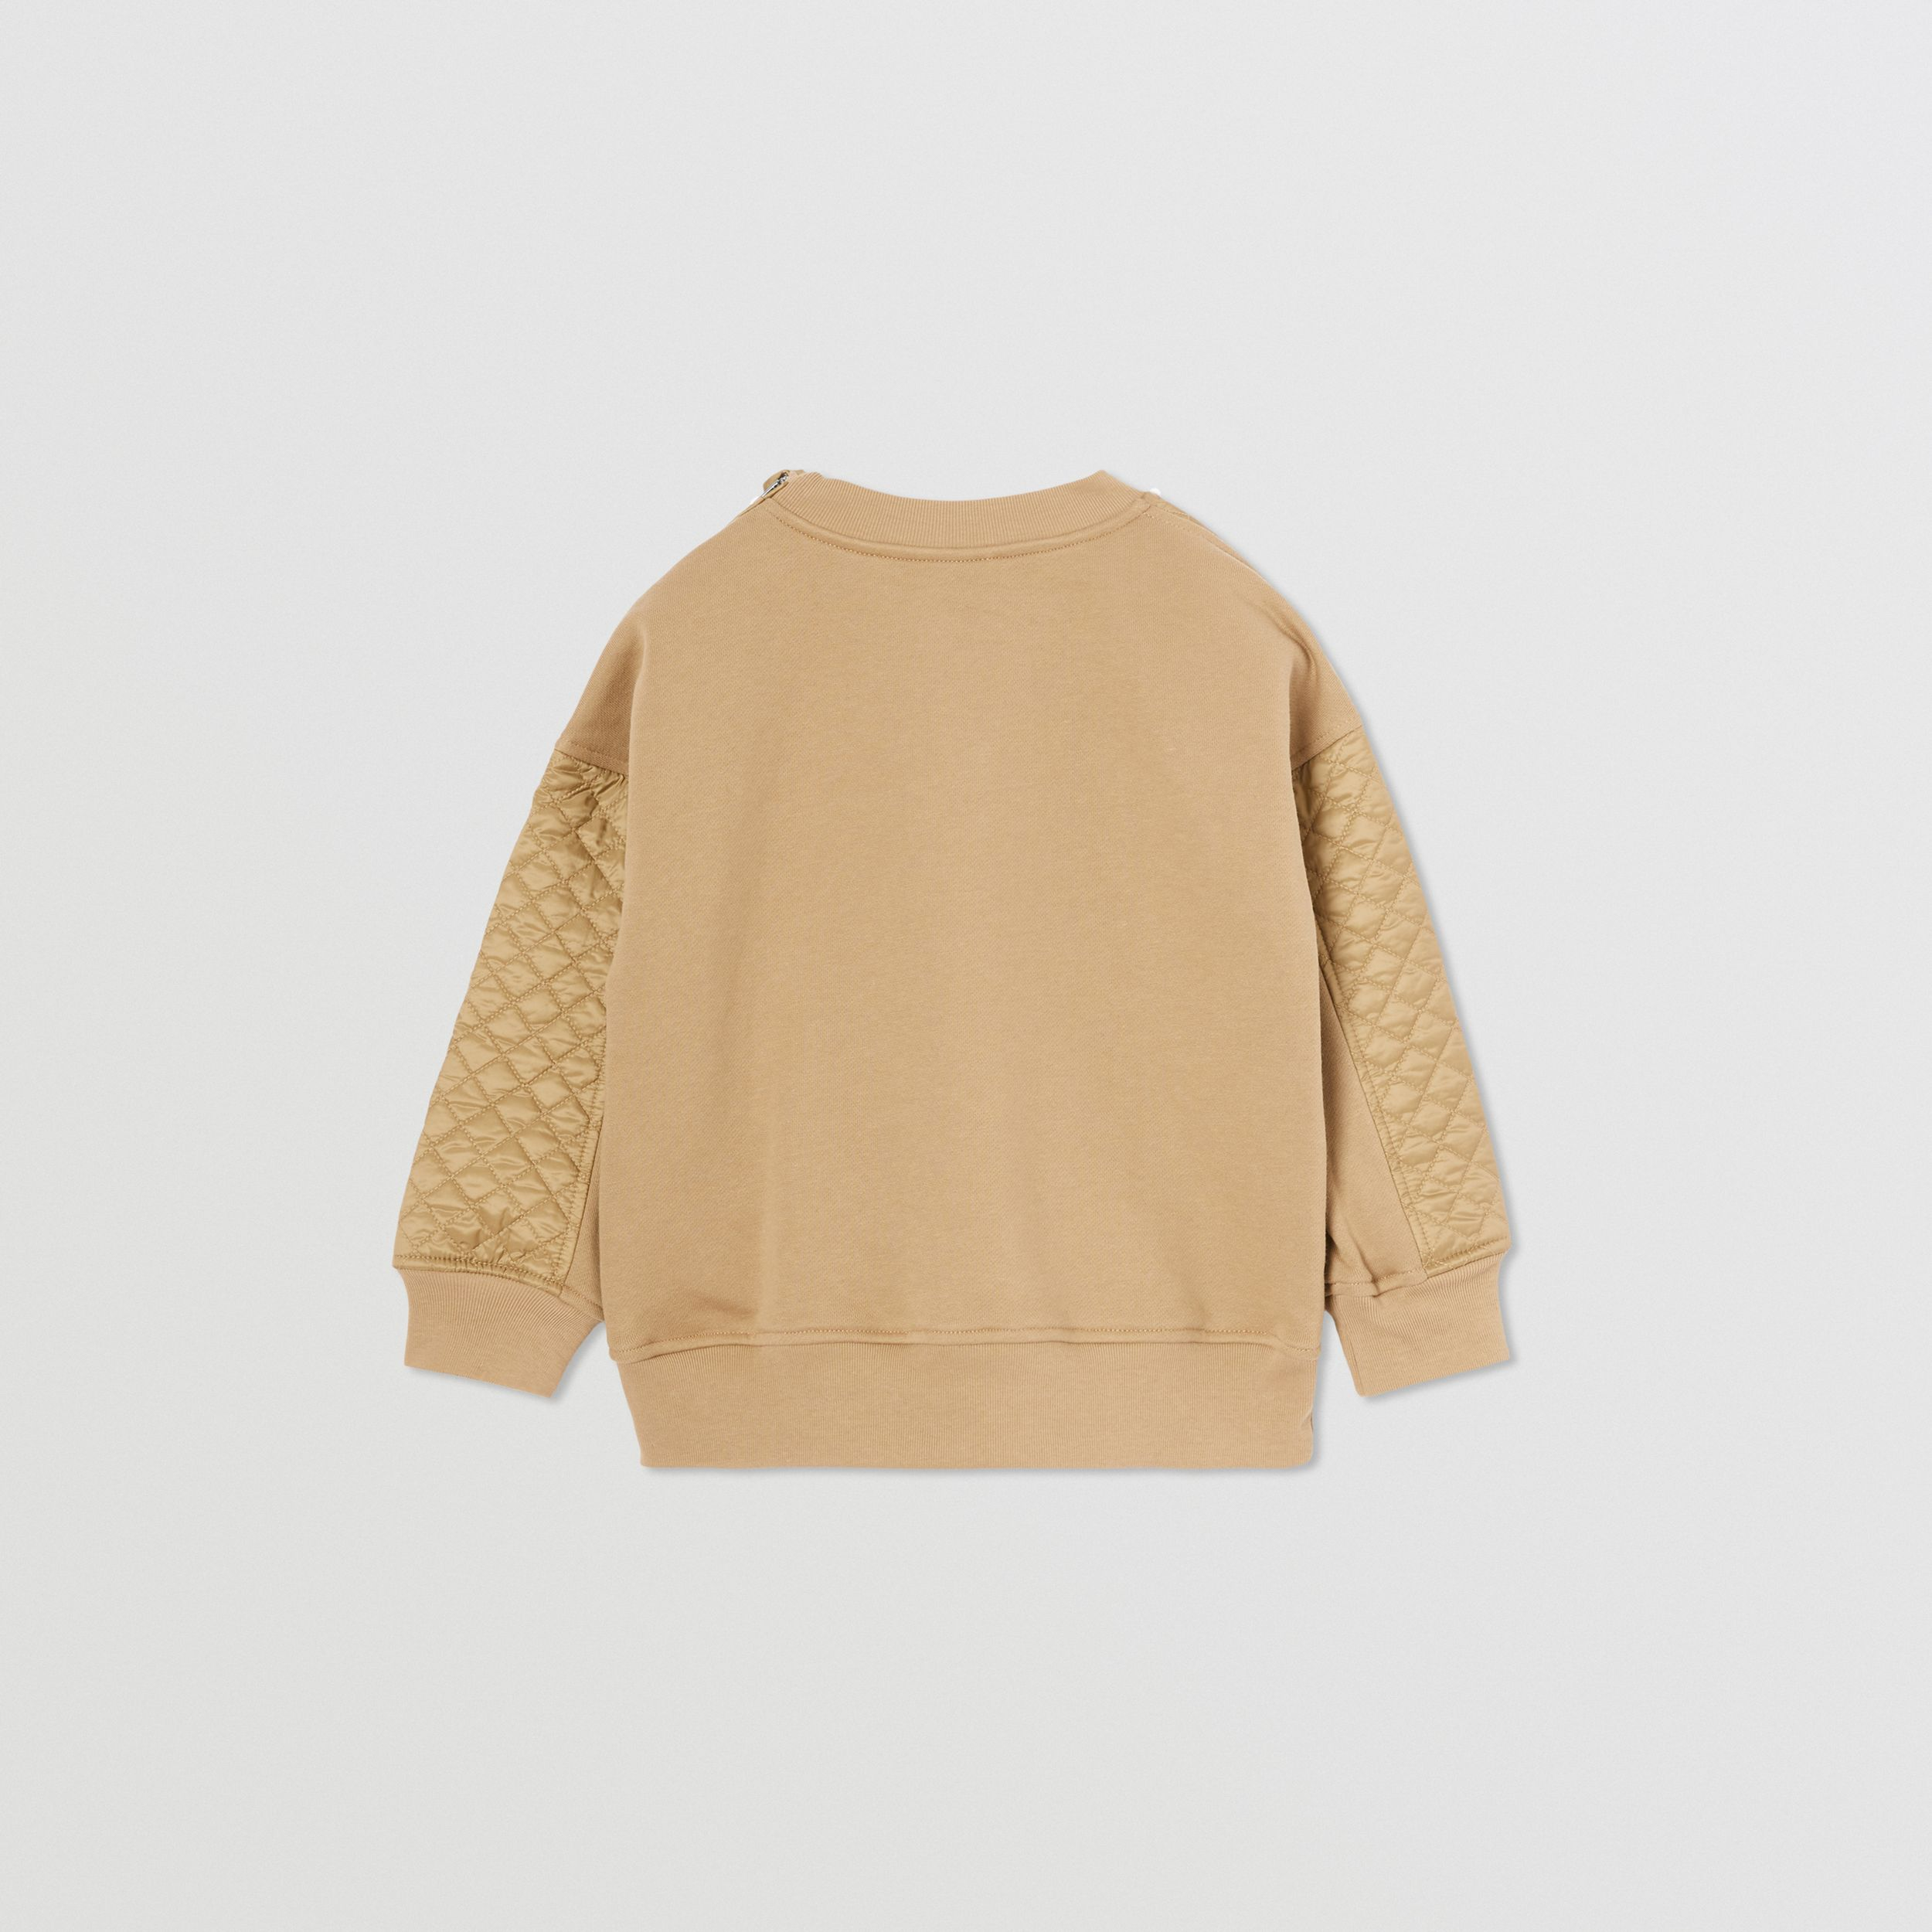 Monogram Quilted Panel Cotton Sweatshirt in Honey | Burberry - 4